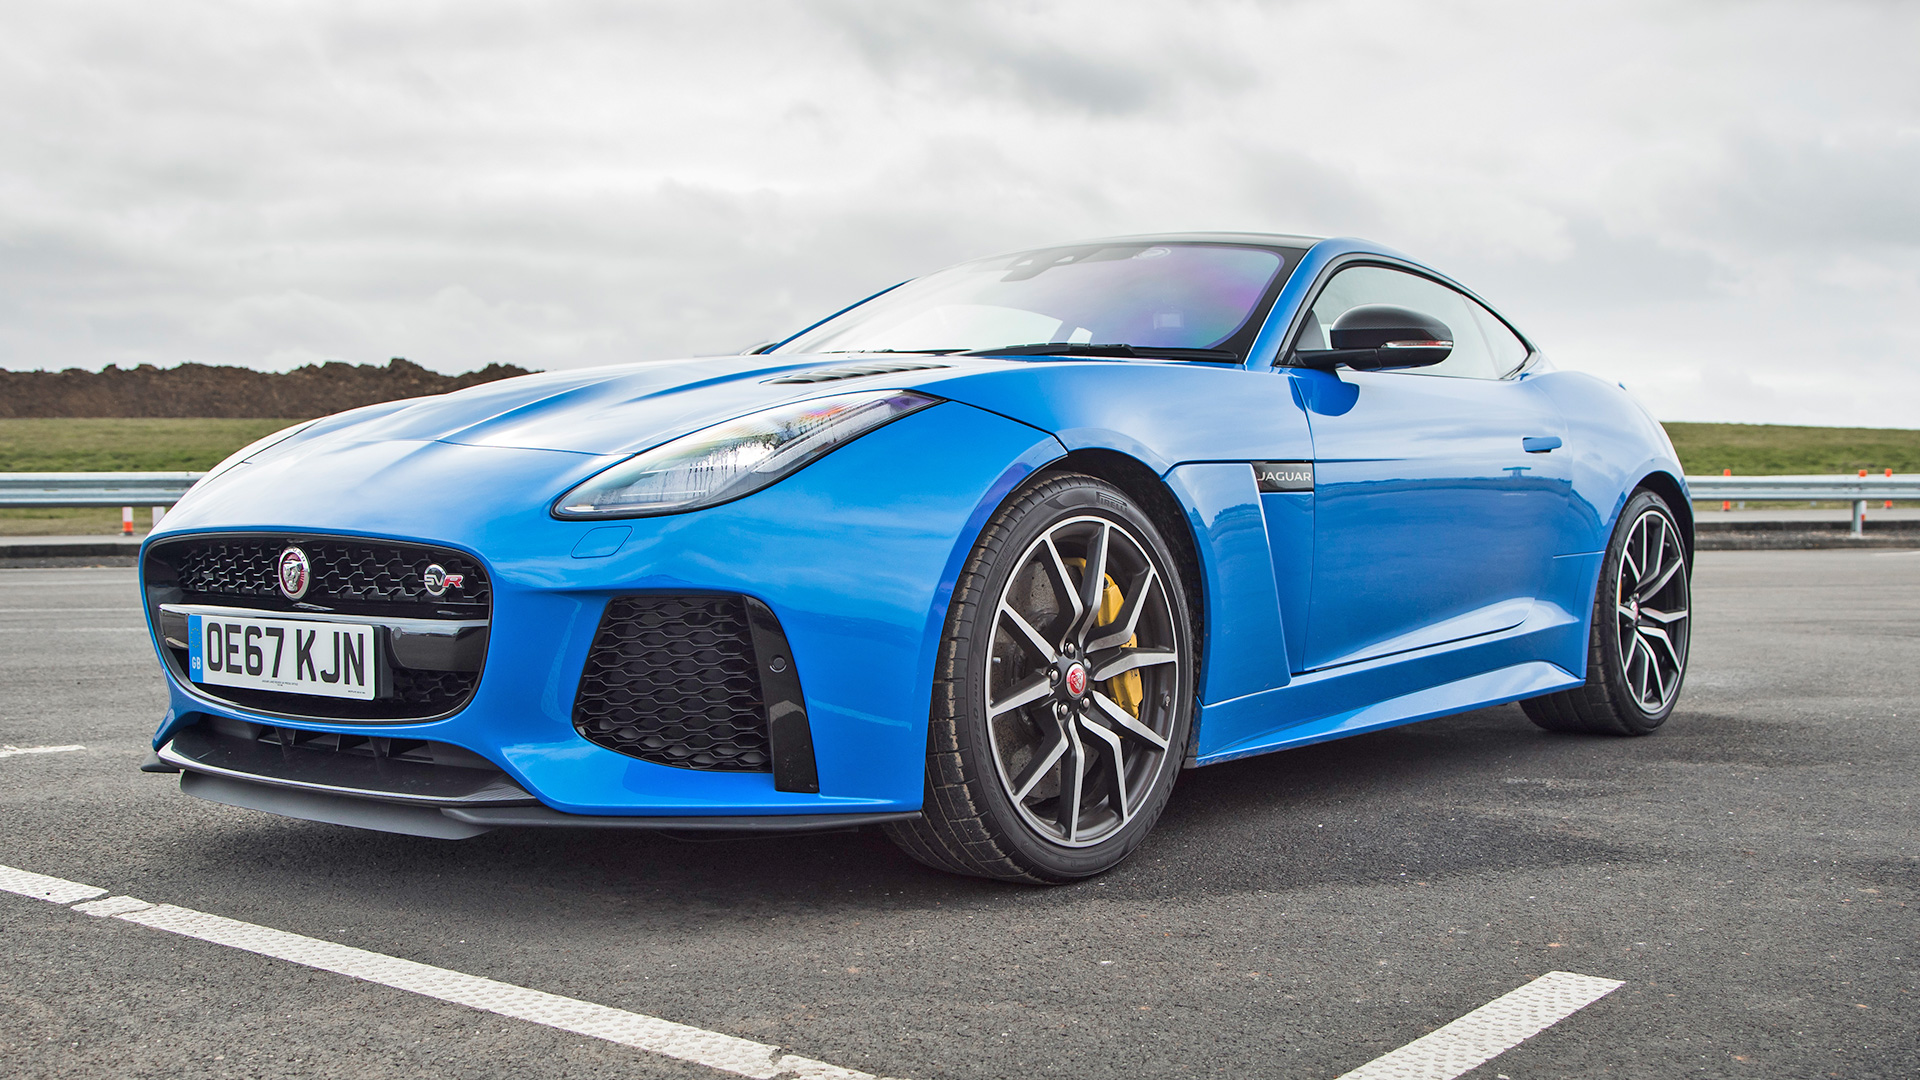 Jaguar F-Type 2018 SVR